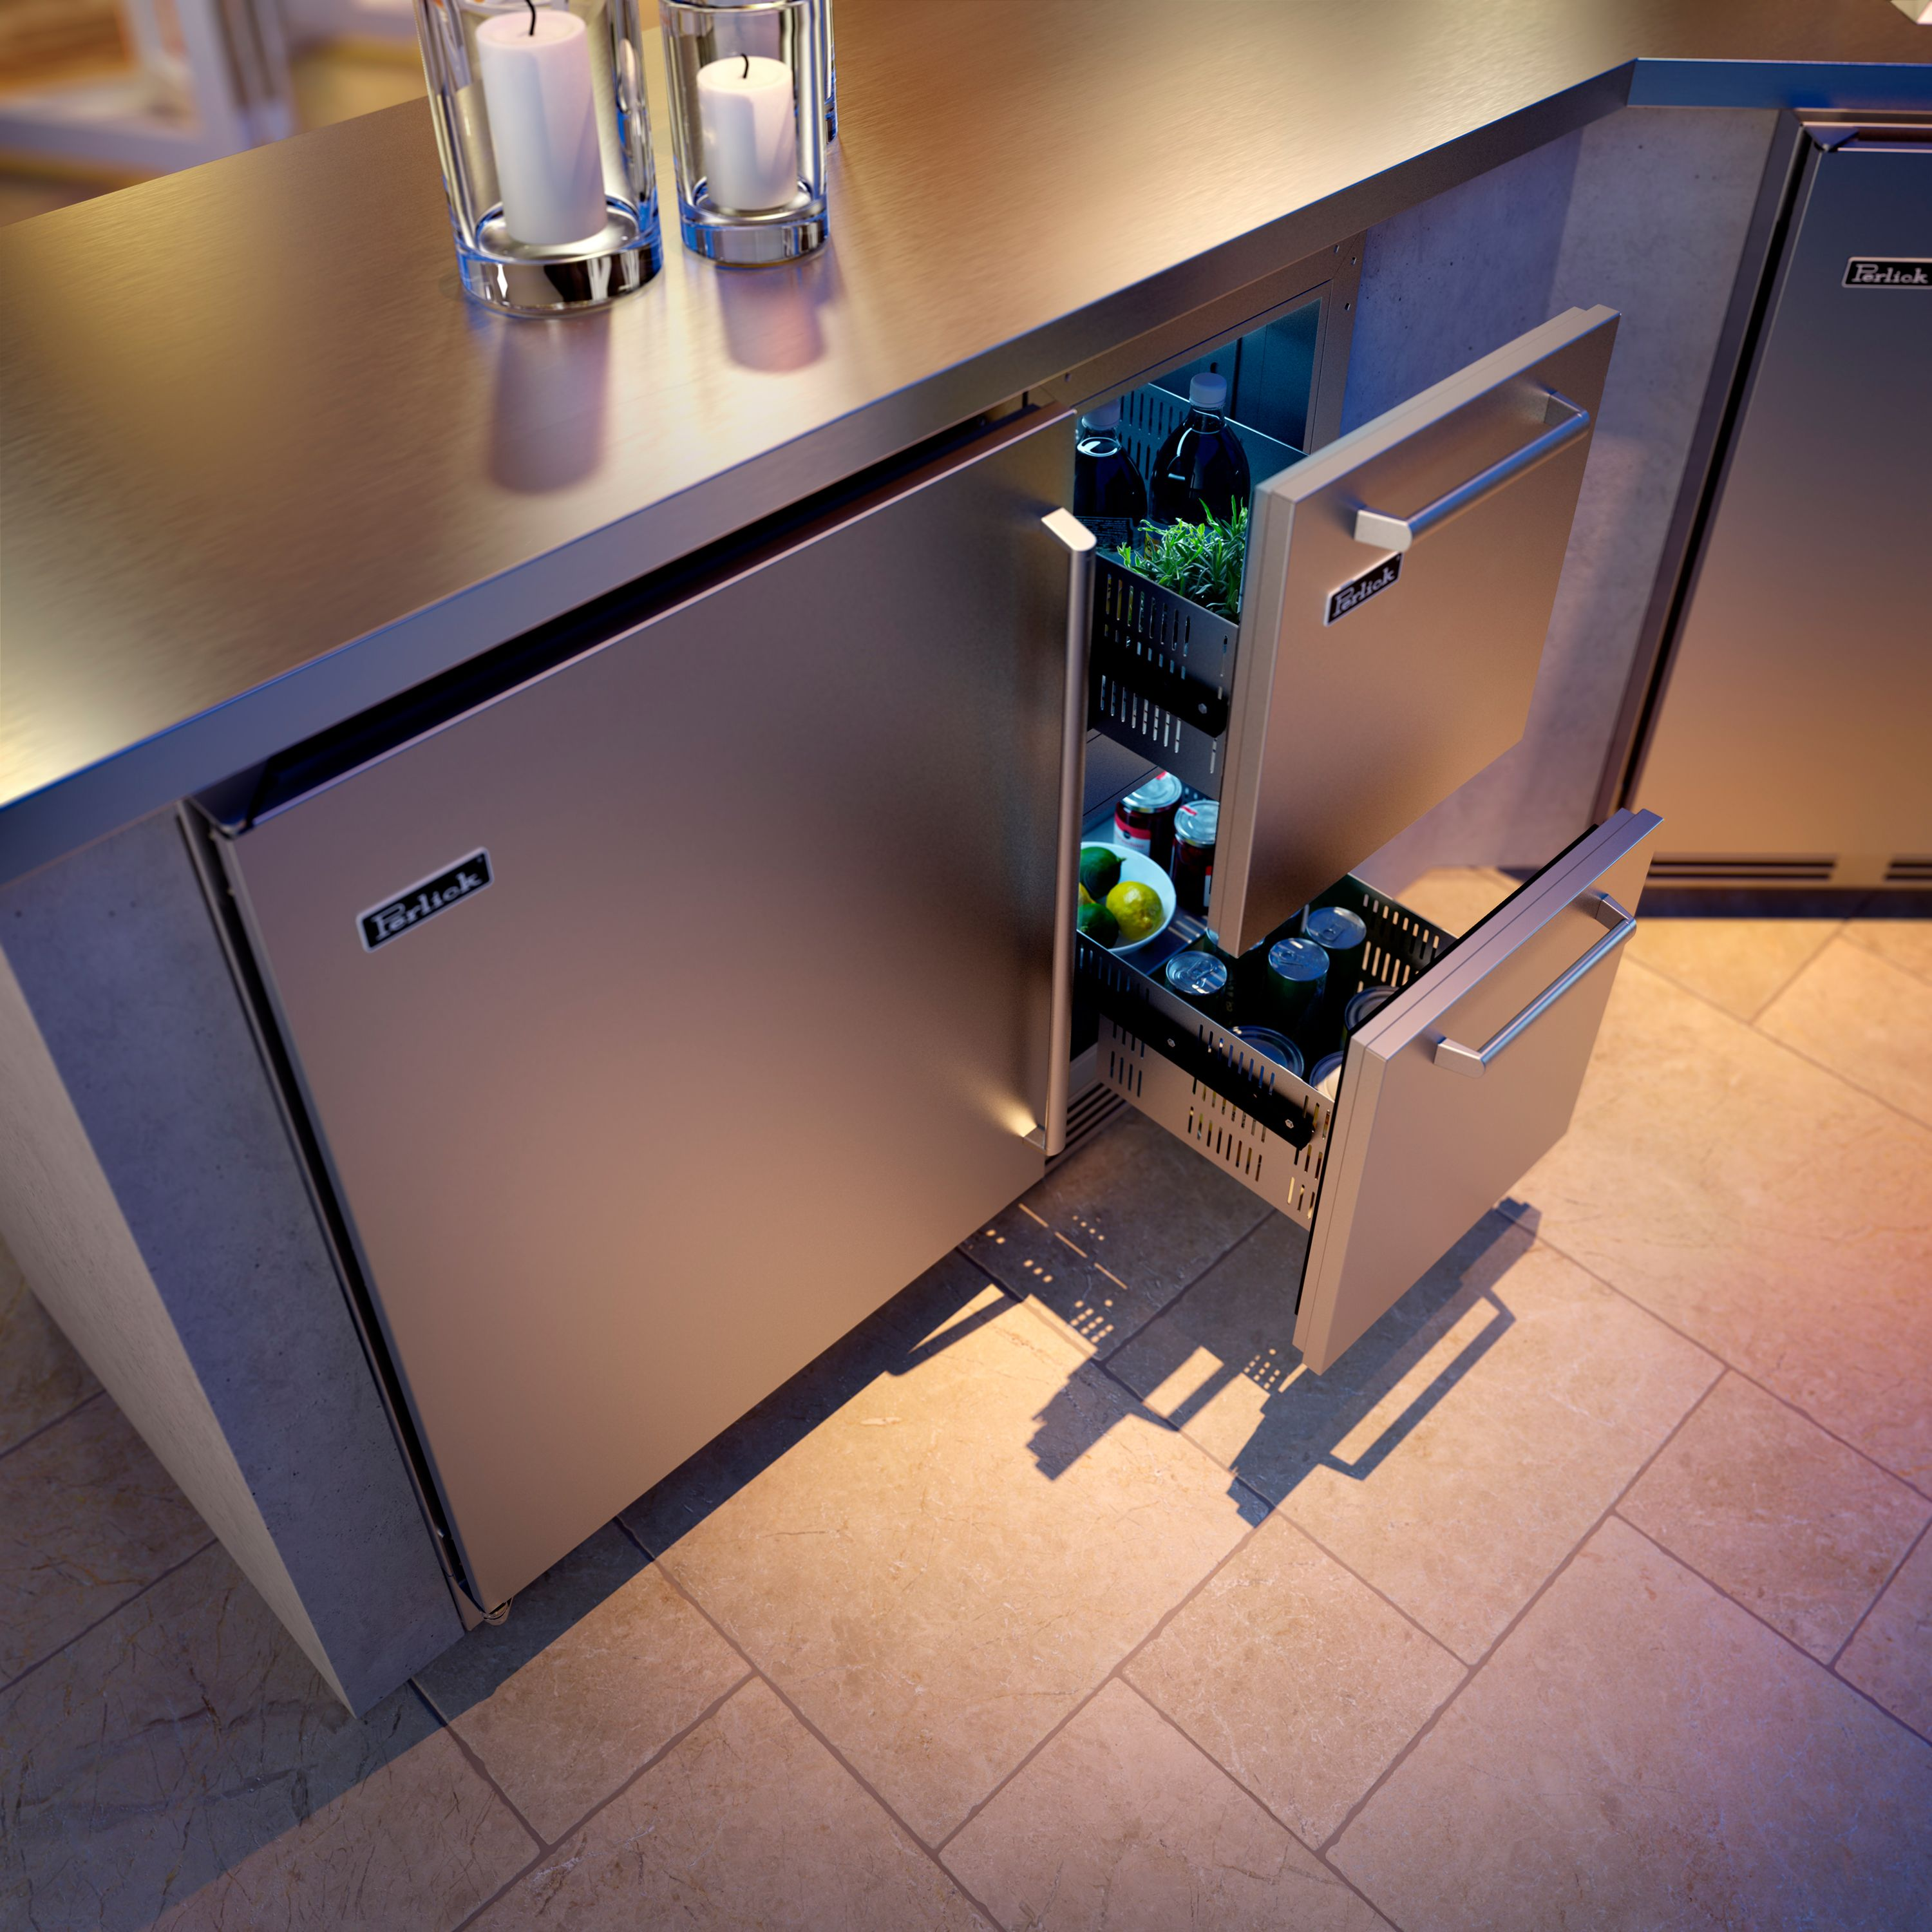 Perlick 15 Outdoor Refrigerator Drawers Are The Perfect Solution For Keeping Herbs Garn Outdoor Refrigerator Undercounter Refrigerator Beverage Refrigerator